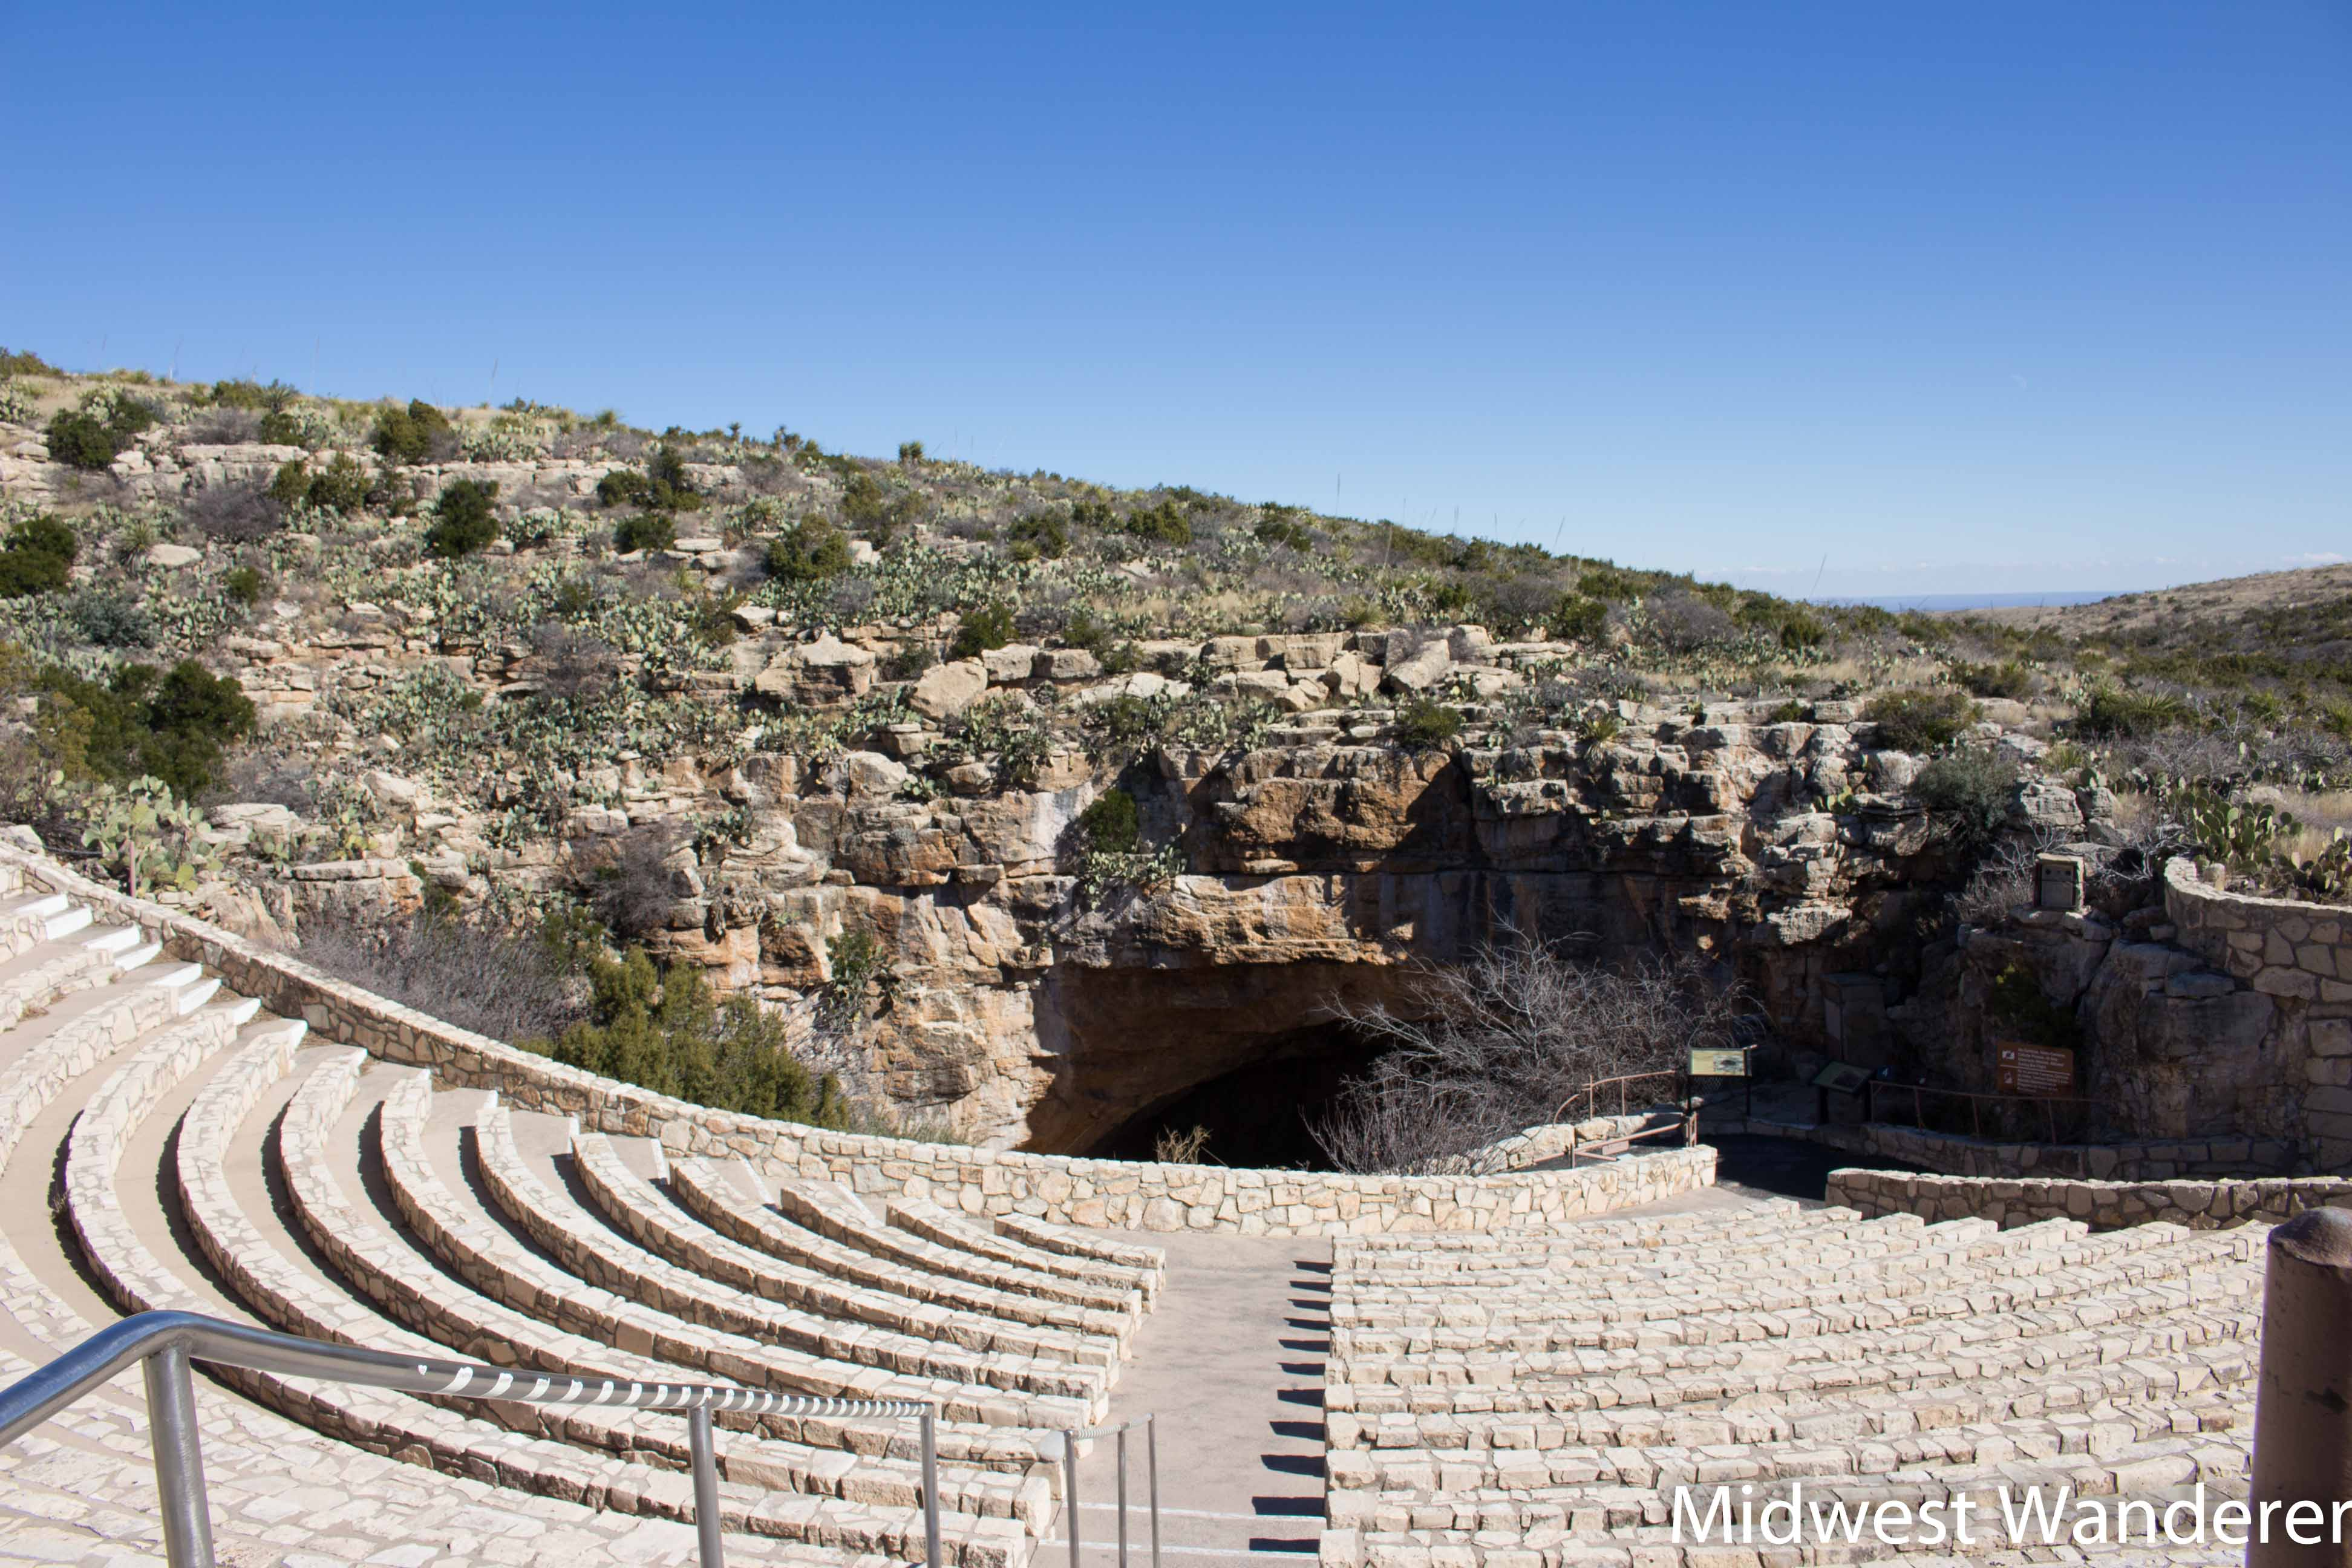 160116_NM_Carlsbad Caverns-4346